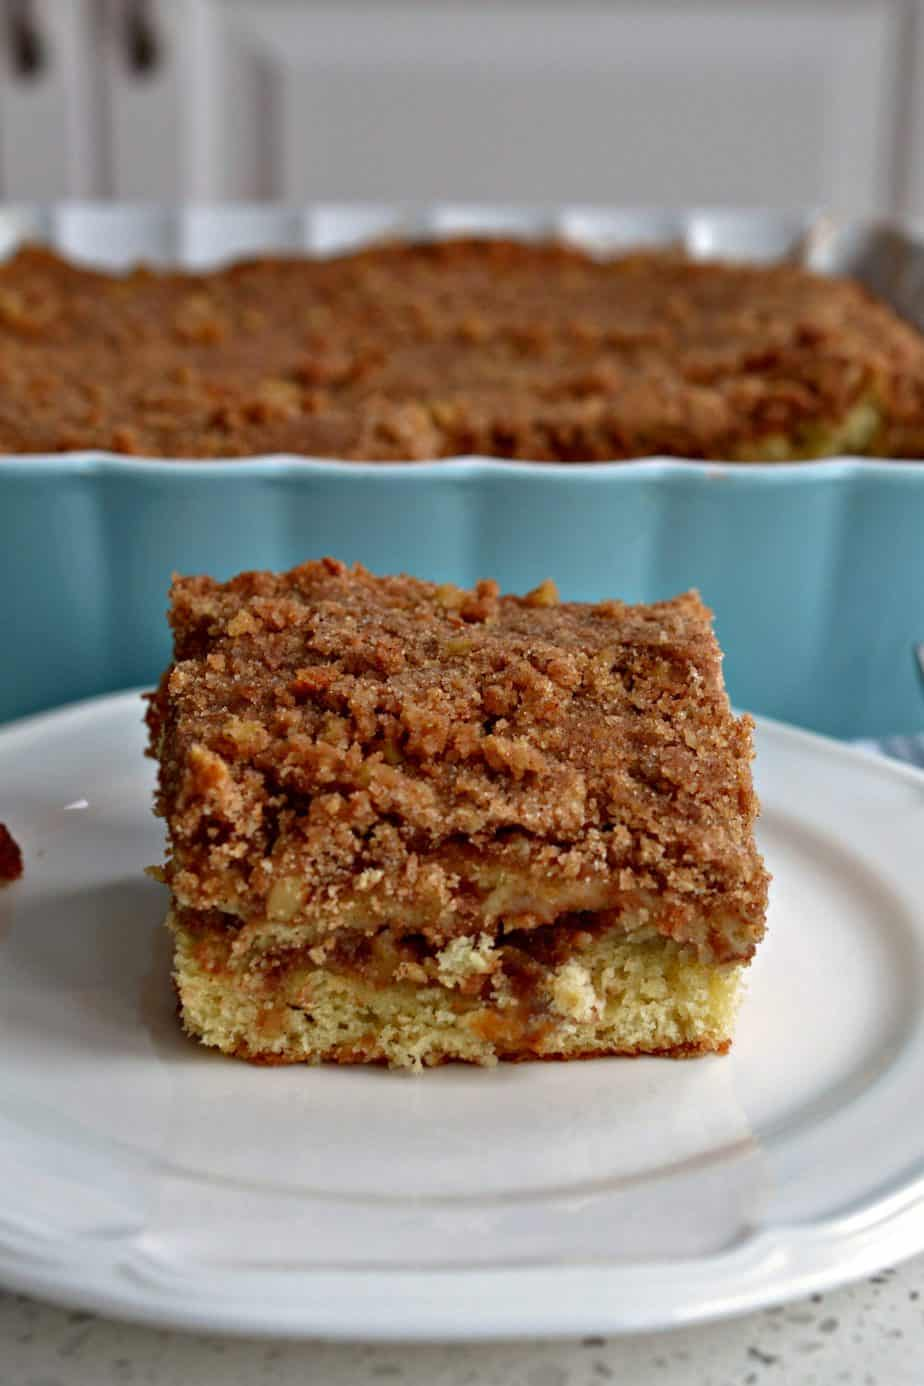 This family friendly coffee cake combines sour cream and butter for a moist rich decadent cake.